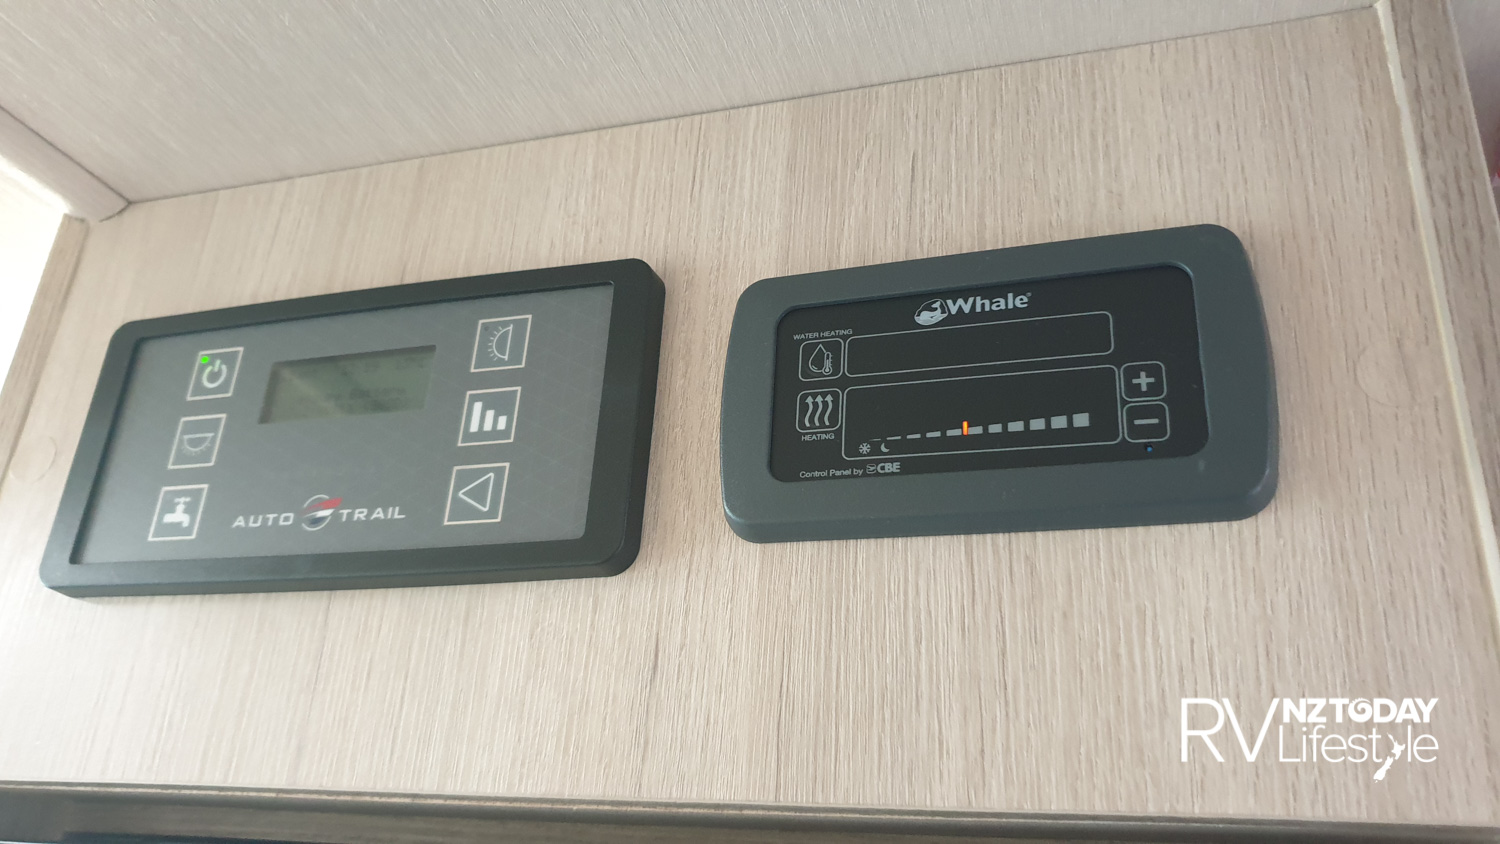 Control panels above the fridge, the Whale underfloor and hot water system has it's own control unit